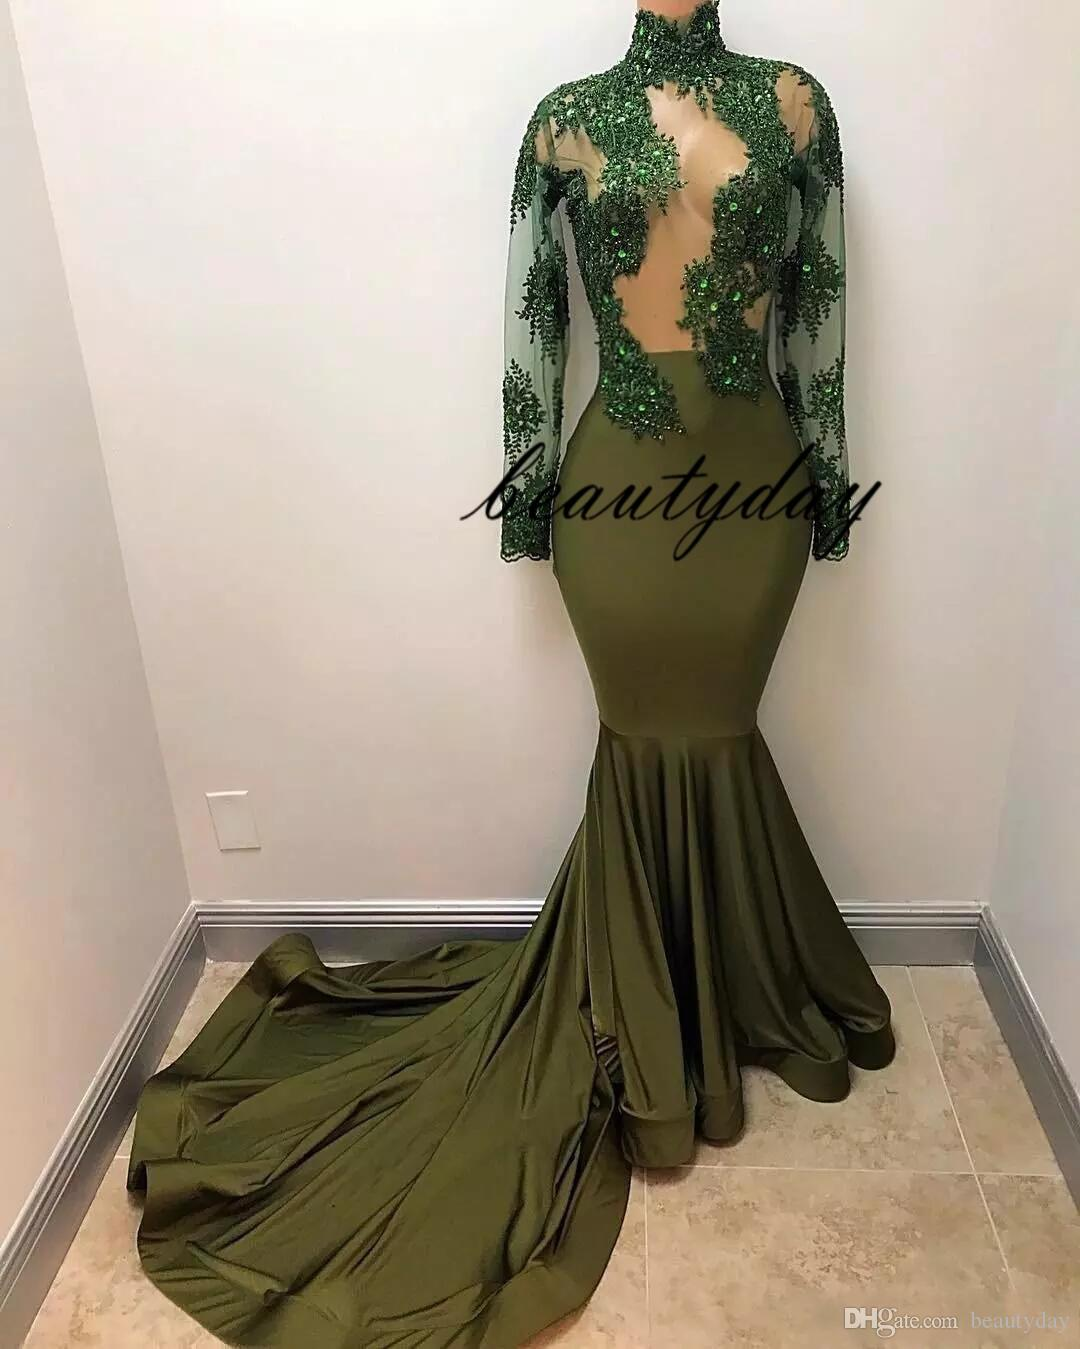 to wear - Camo Green prom dresses pictures video